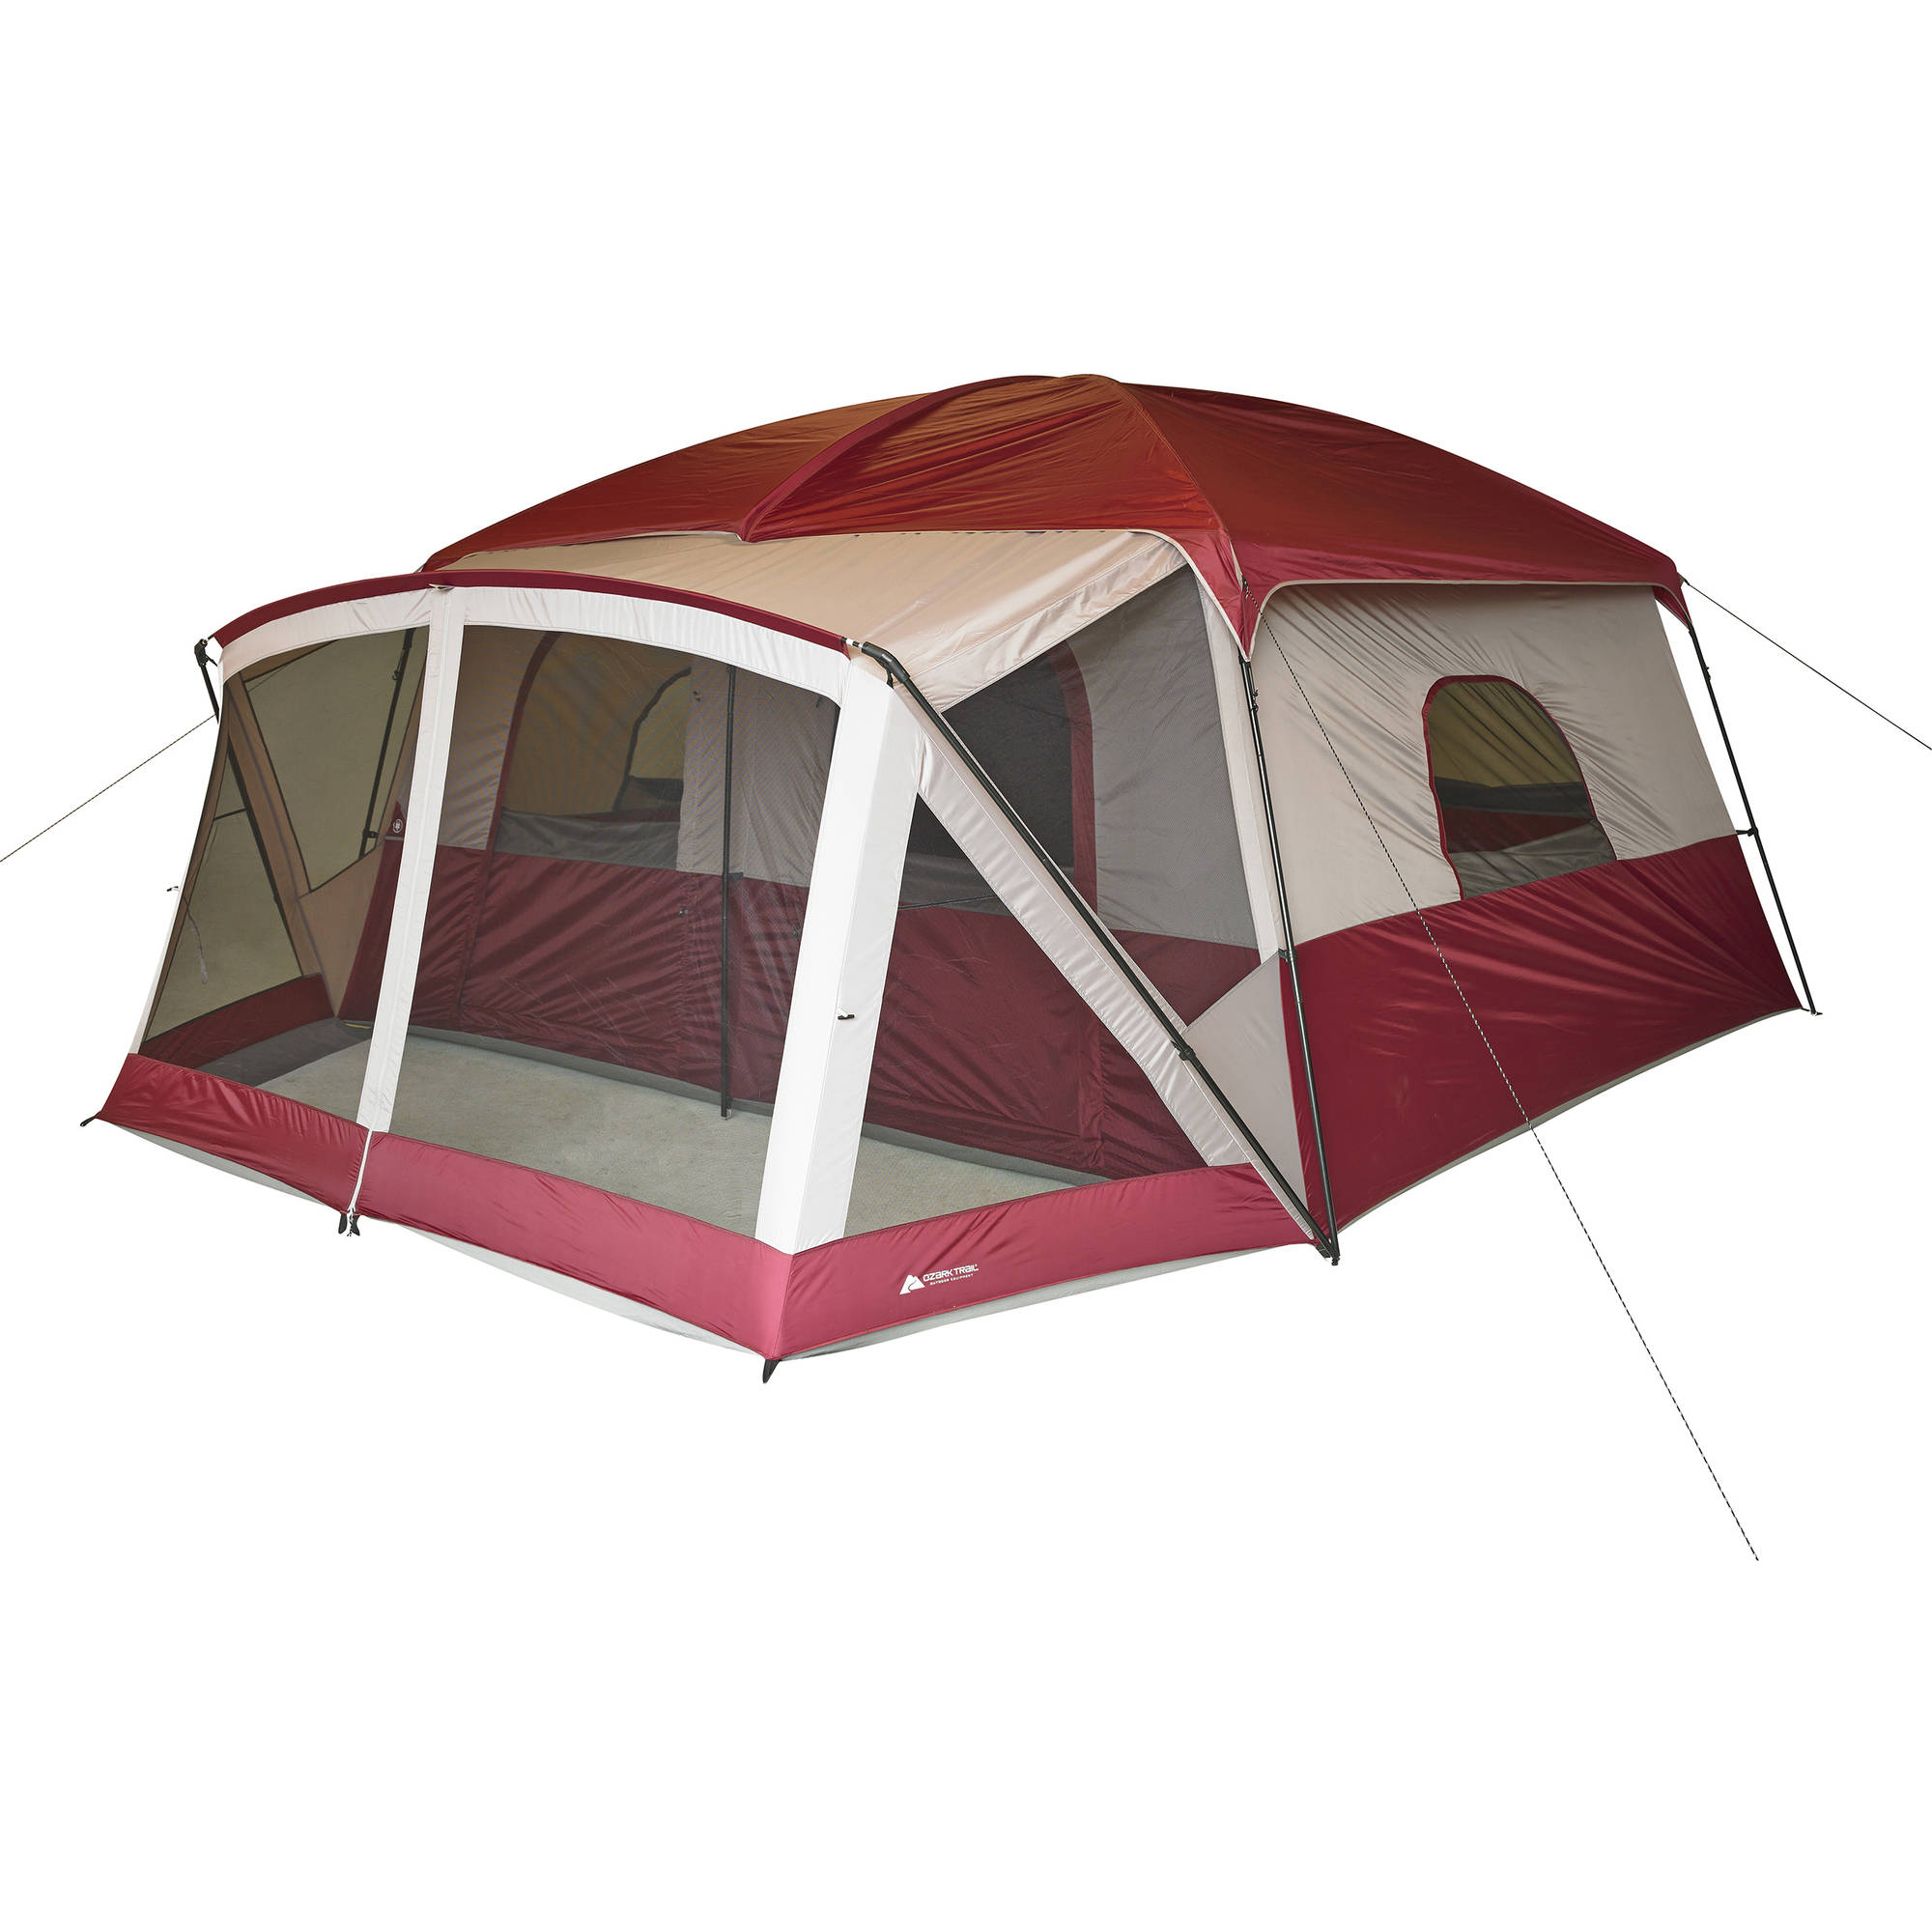 hiking cabins outdoor tent cabin camping pin shelter person rooms sport